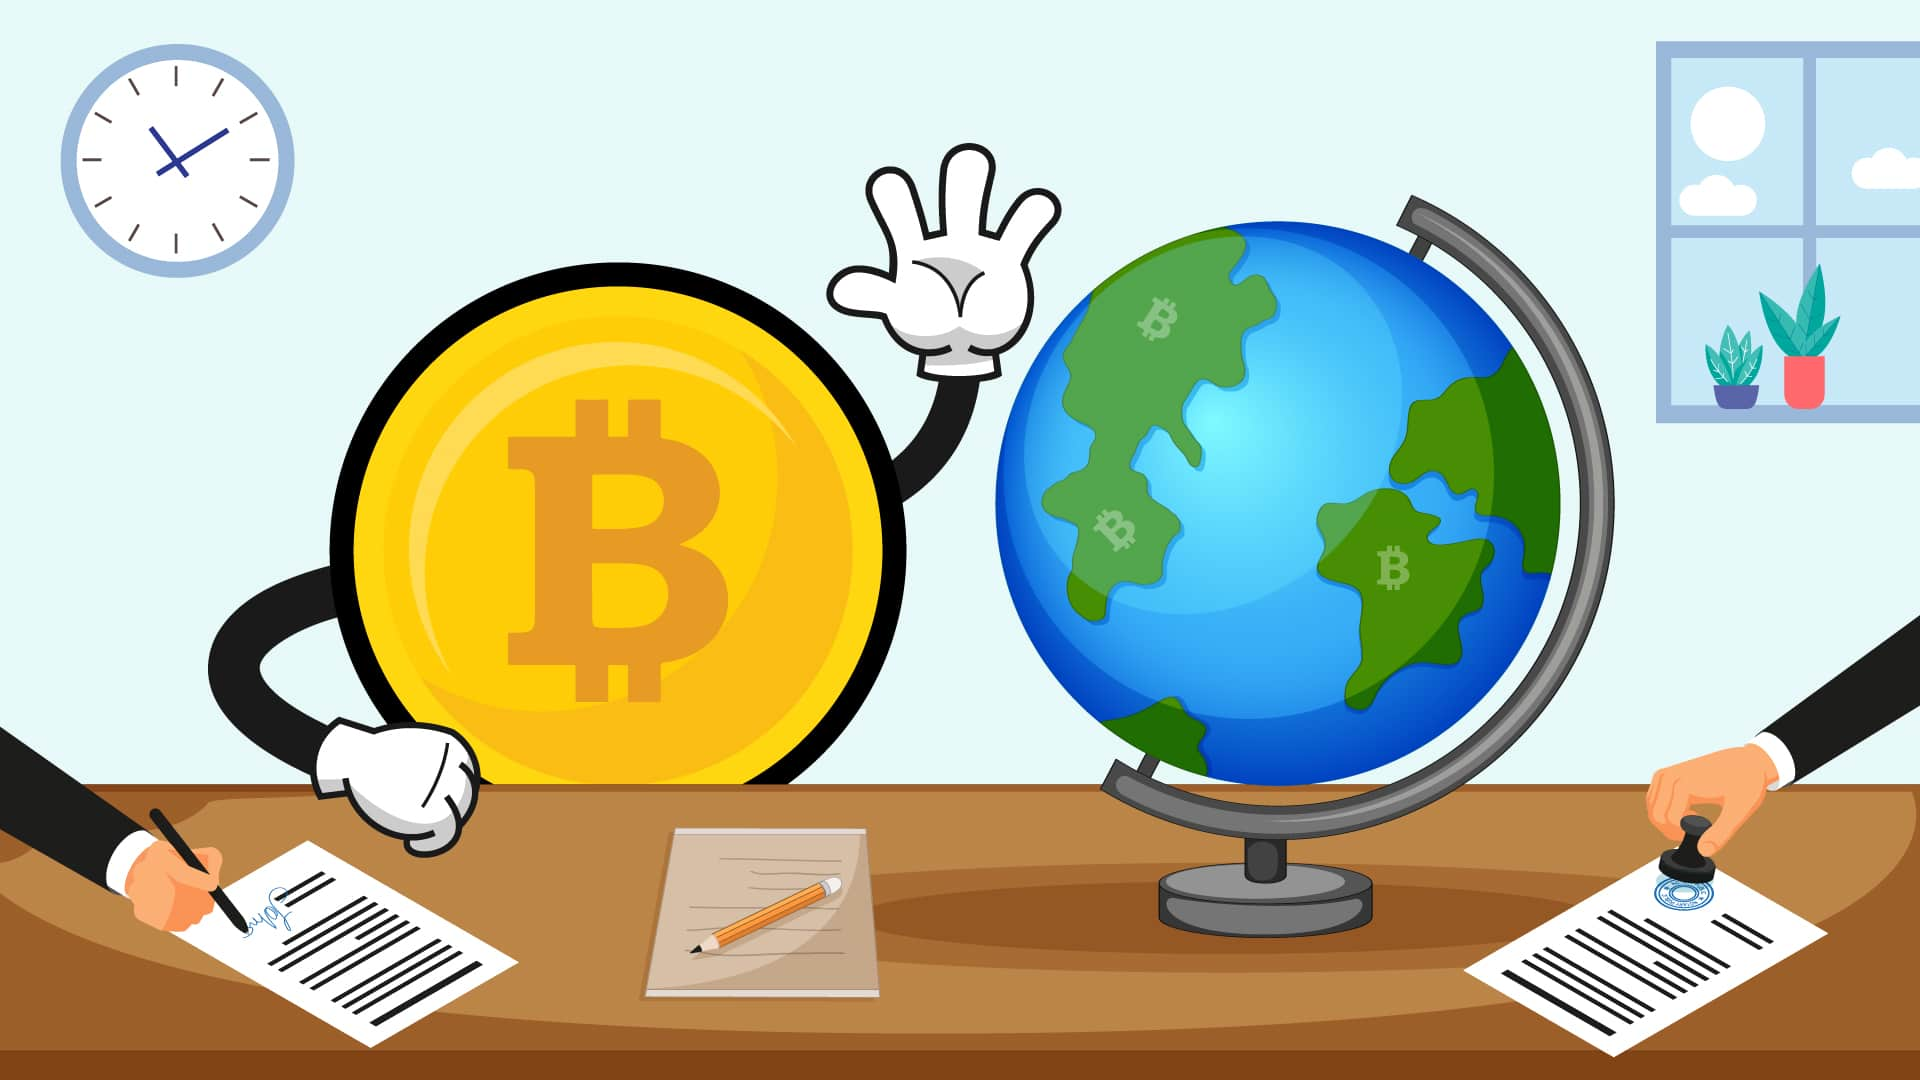 How 2020 Is Landmark Year For <bold>Bitcoin</bold> Countries?